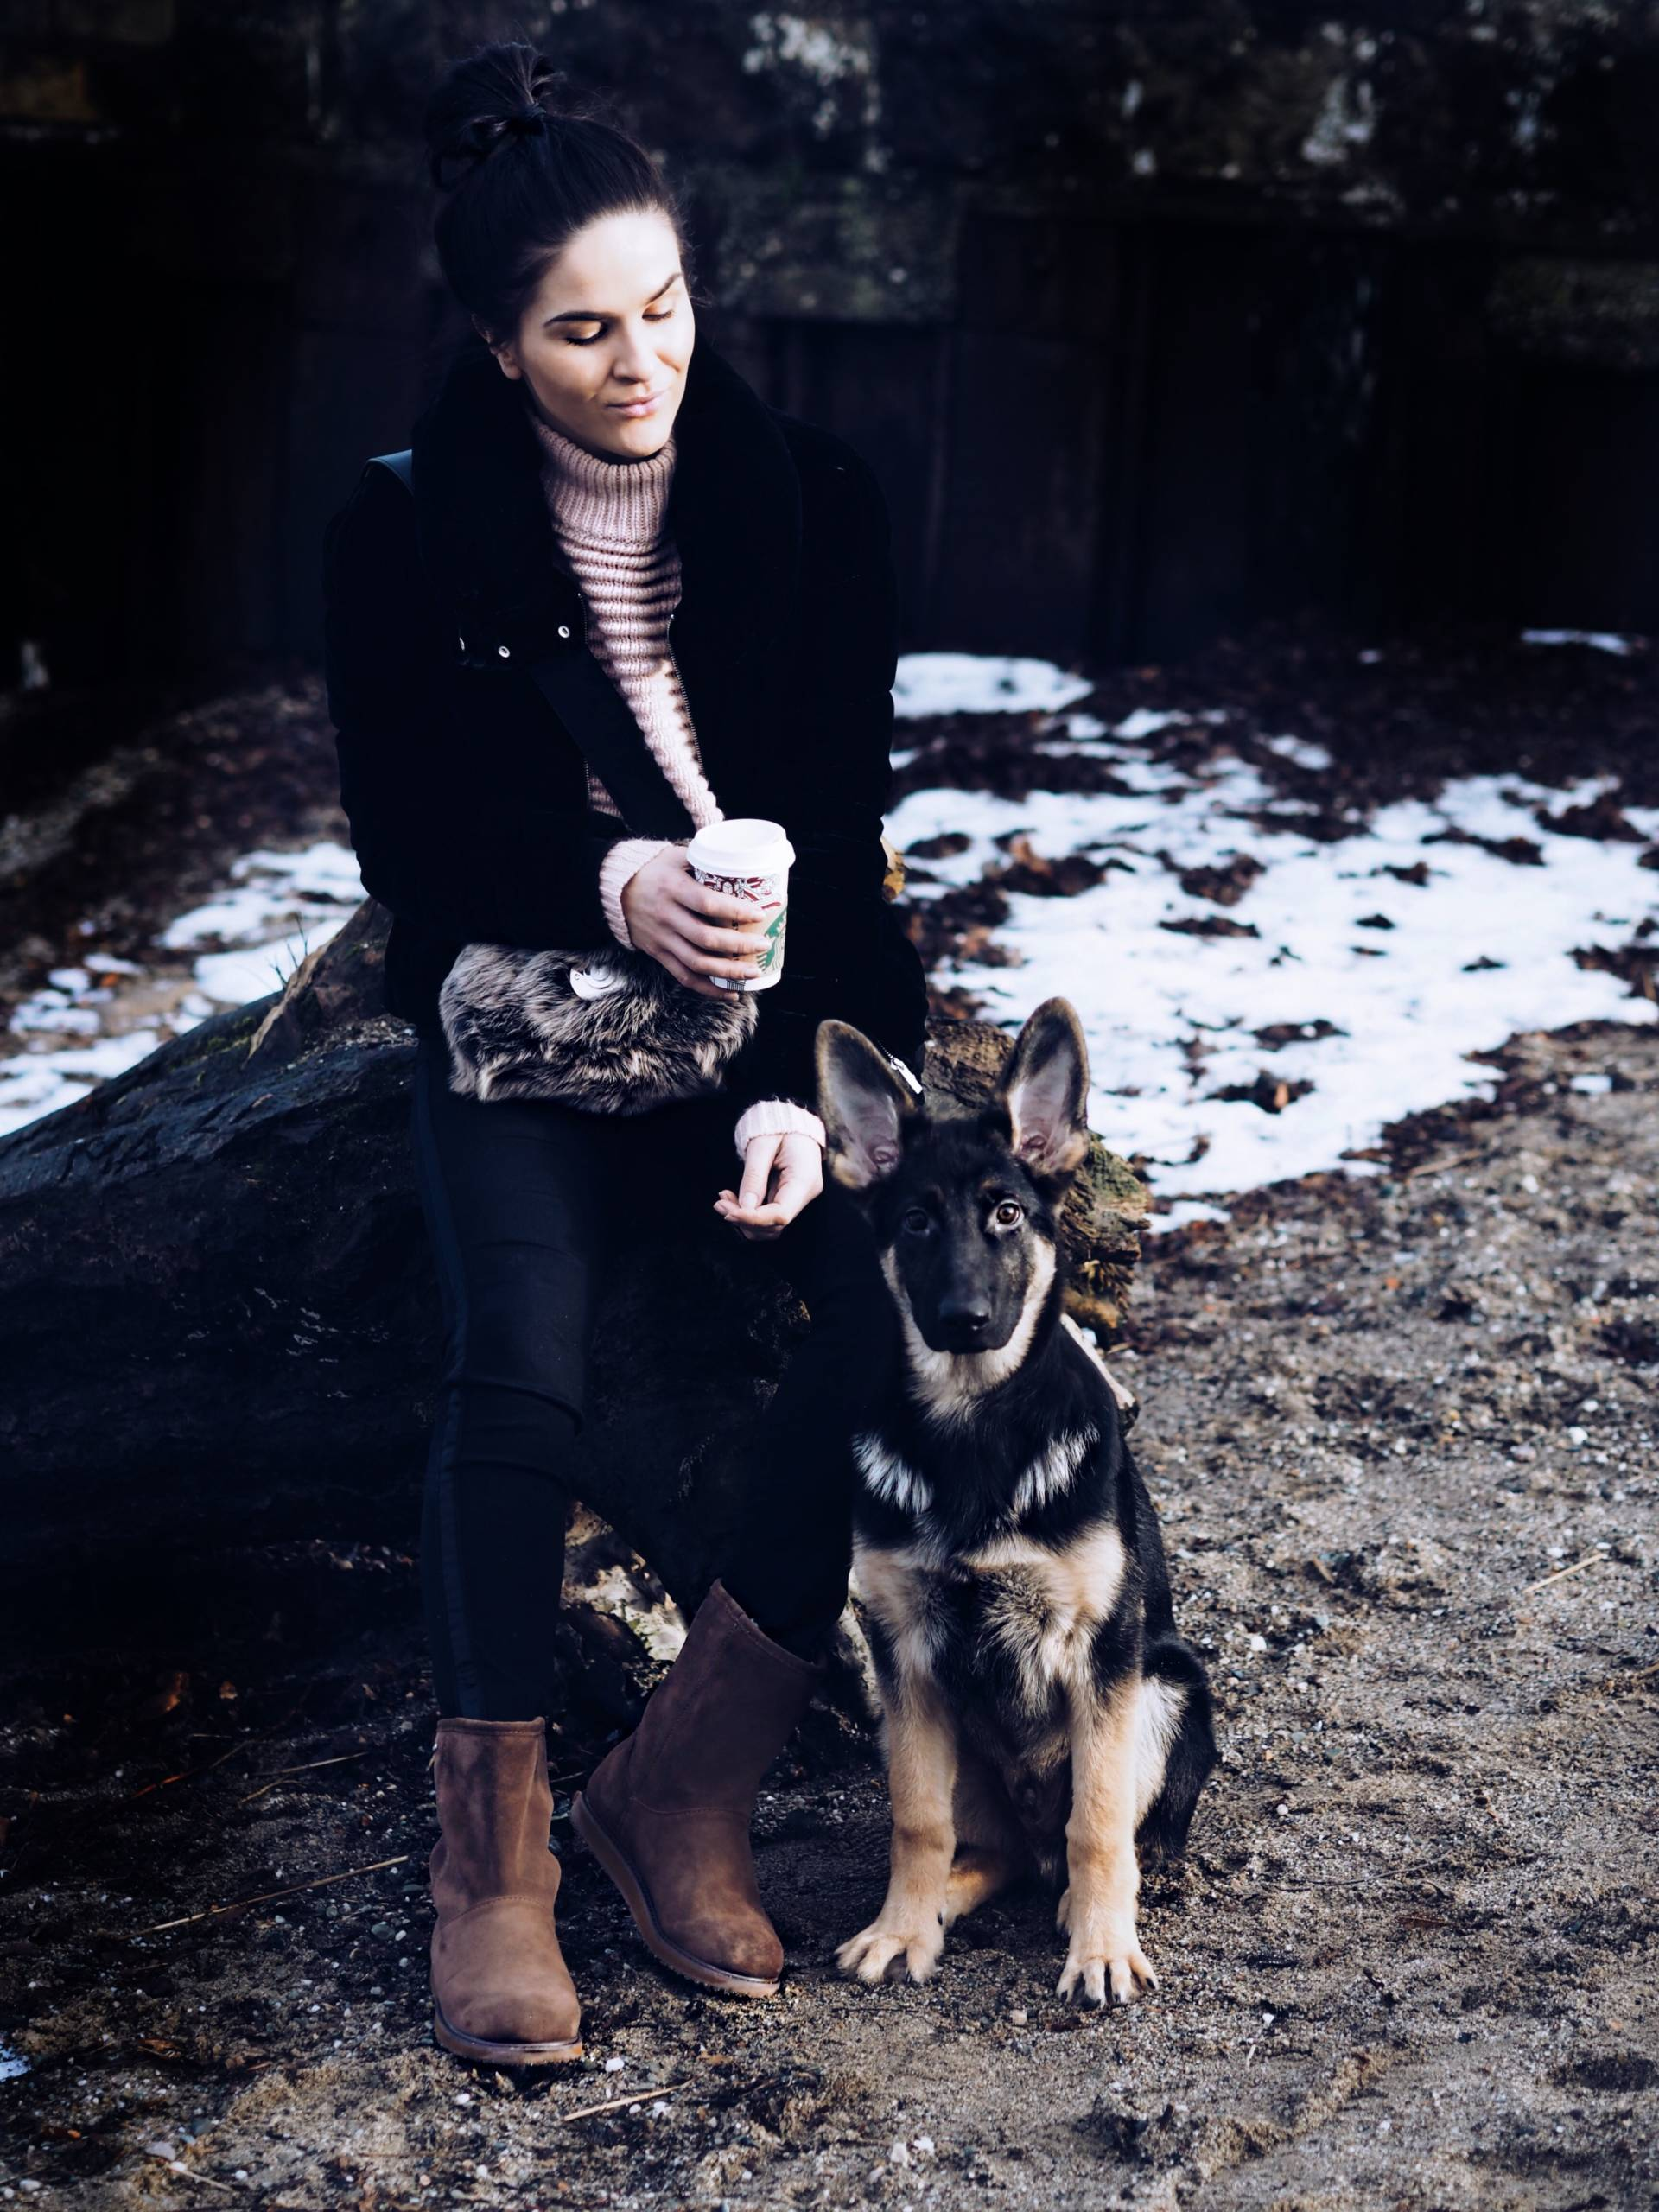 LAFOTKA-PATERSON-EMU-WATERPROOF-BOOTS-GERMAN-SHEPHERD-PUPPY-GLASGOW